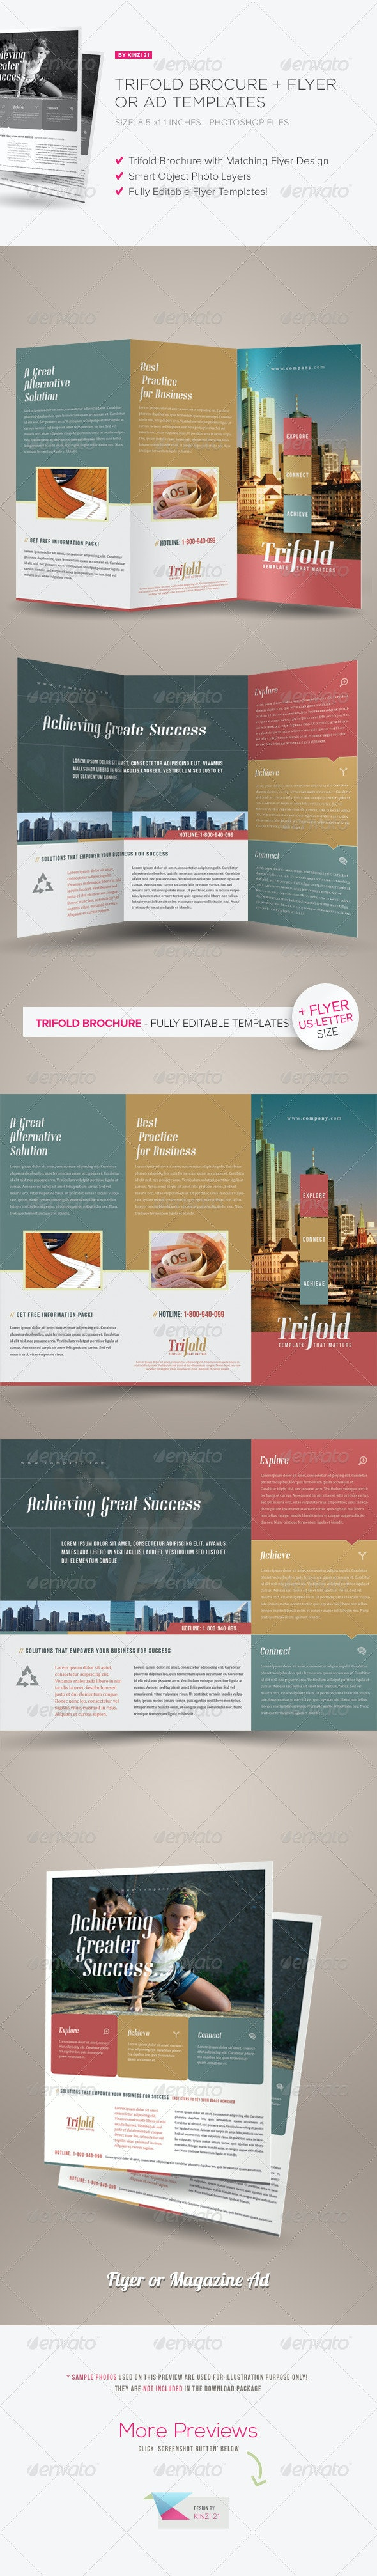 Trifold Brochure + Flyer / Ad Templates - Corporate Brochures